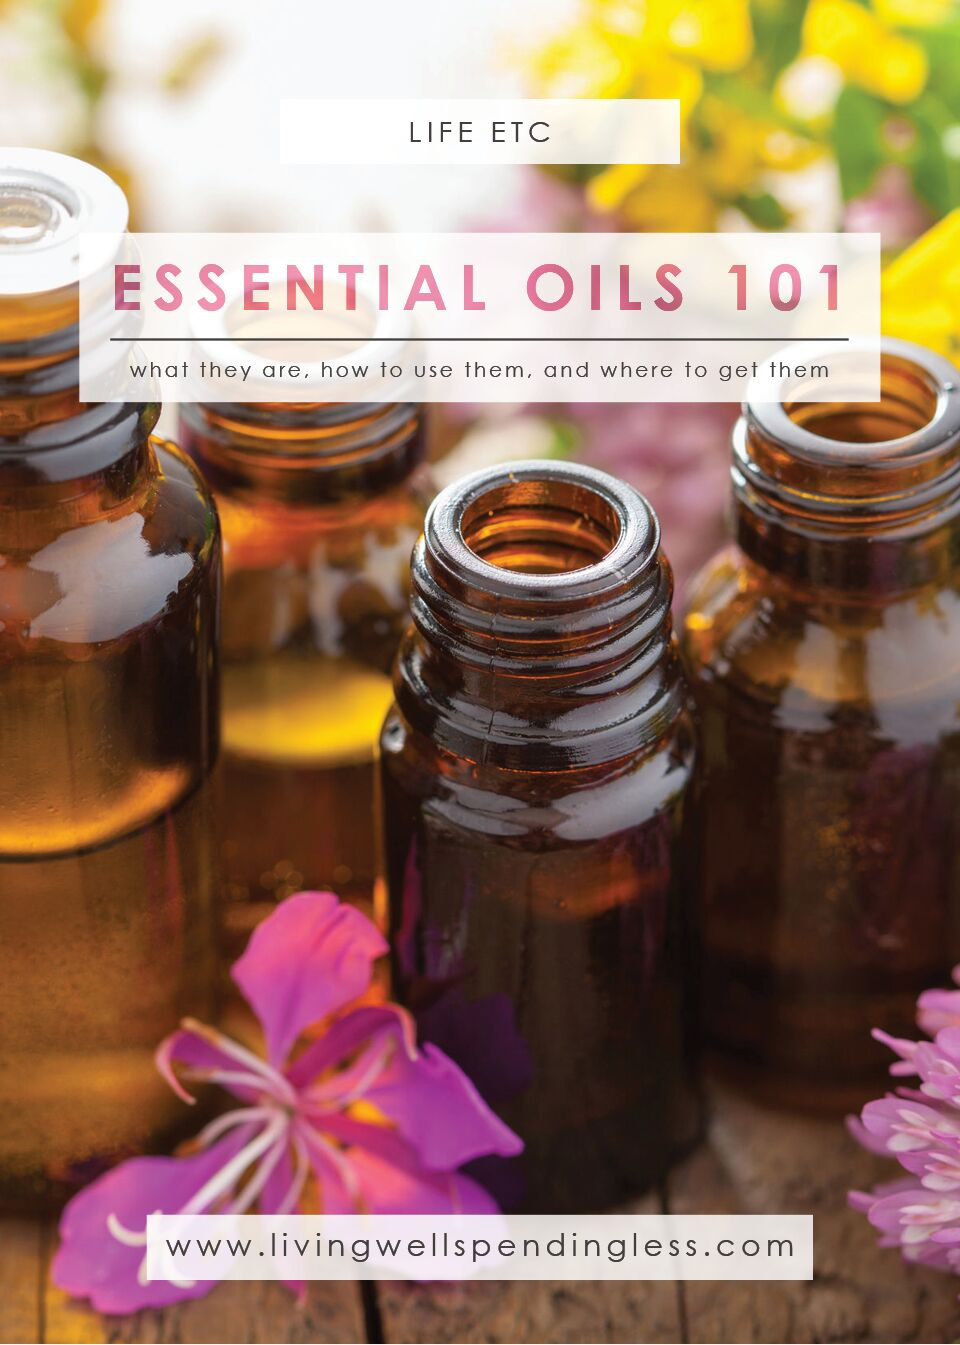 Essential Oils 101: What they are, how to use them and where to get them.